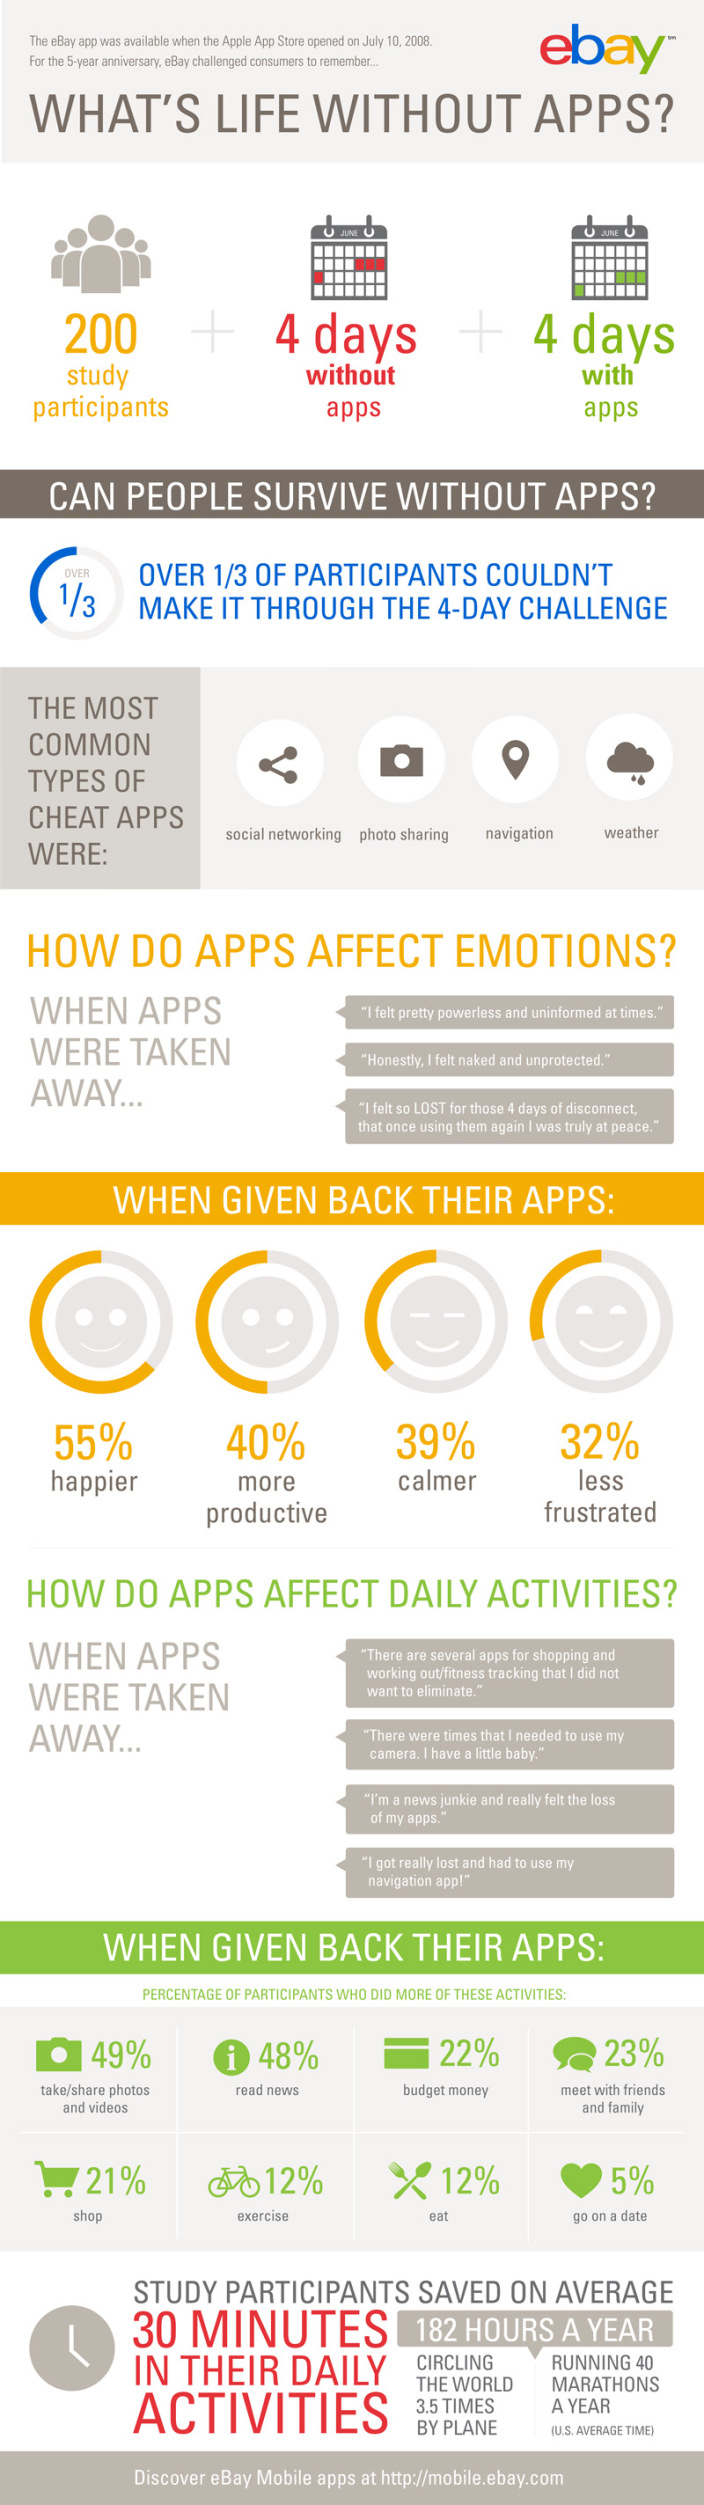 What's Life Without iPhone Apps For 4 Days? [INFOGRAPHIC]